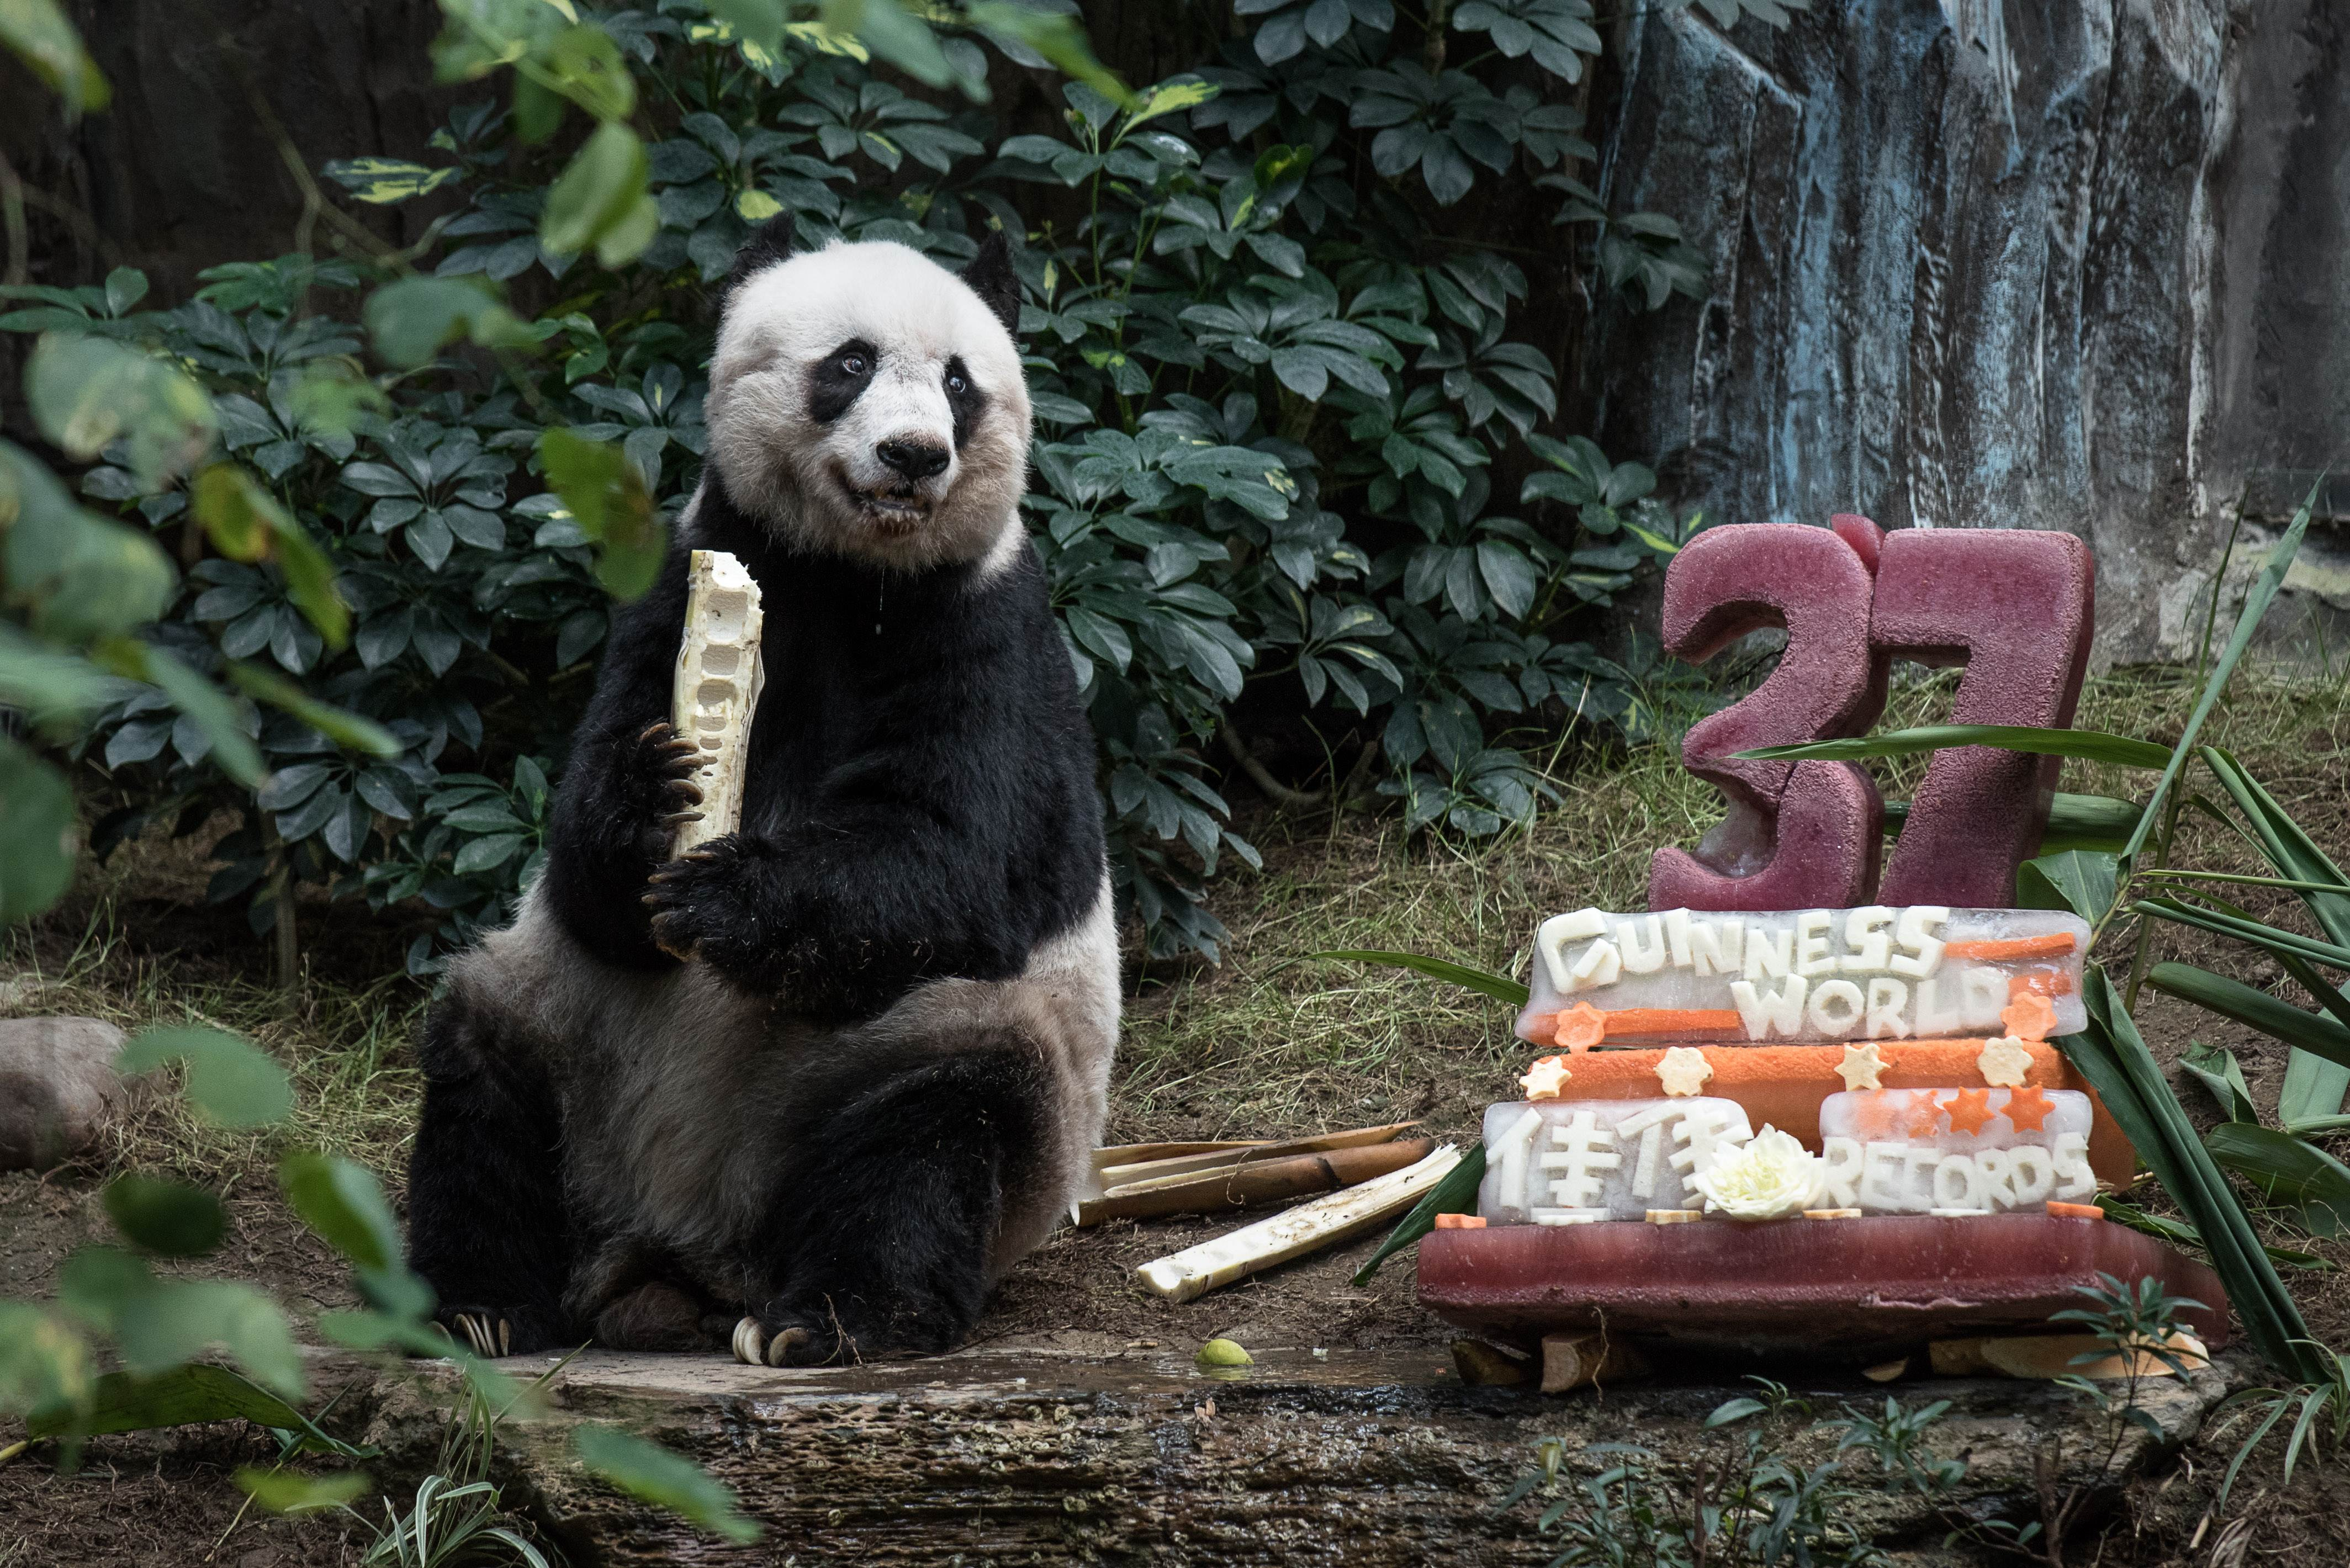 Giant panda Jia Jia eats a bamboo stick next to her cake made of ice and fruit juice to mark her 37th birthday at an amusement park in Hong Kong on July 28, 2015.  It may not be considered a landmark birthday for humans but turning 37 made Jia Jia the oldest ever giant panda in captivity ageing the equivalent of more than 100-years-old in human terms. Photo: AFP